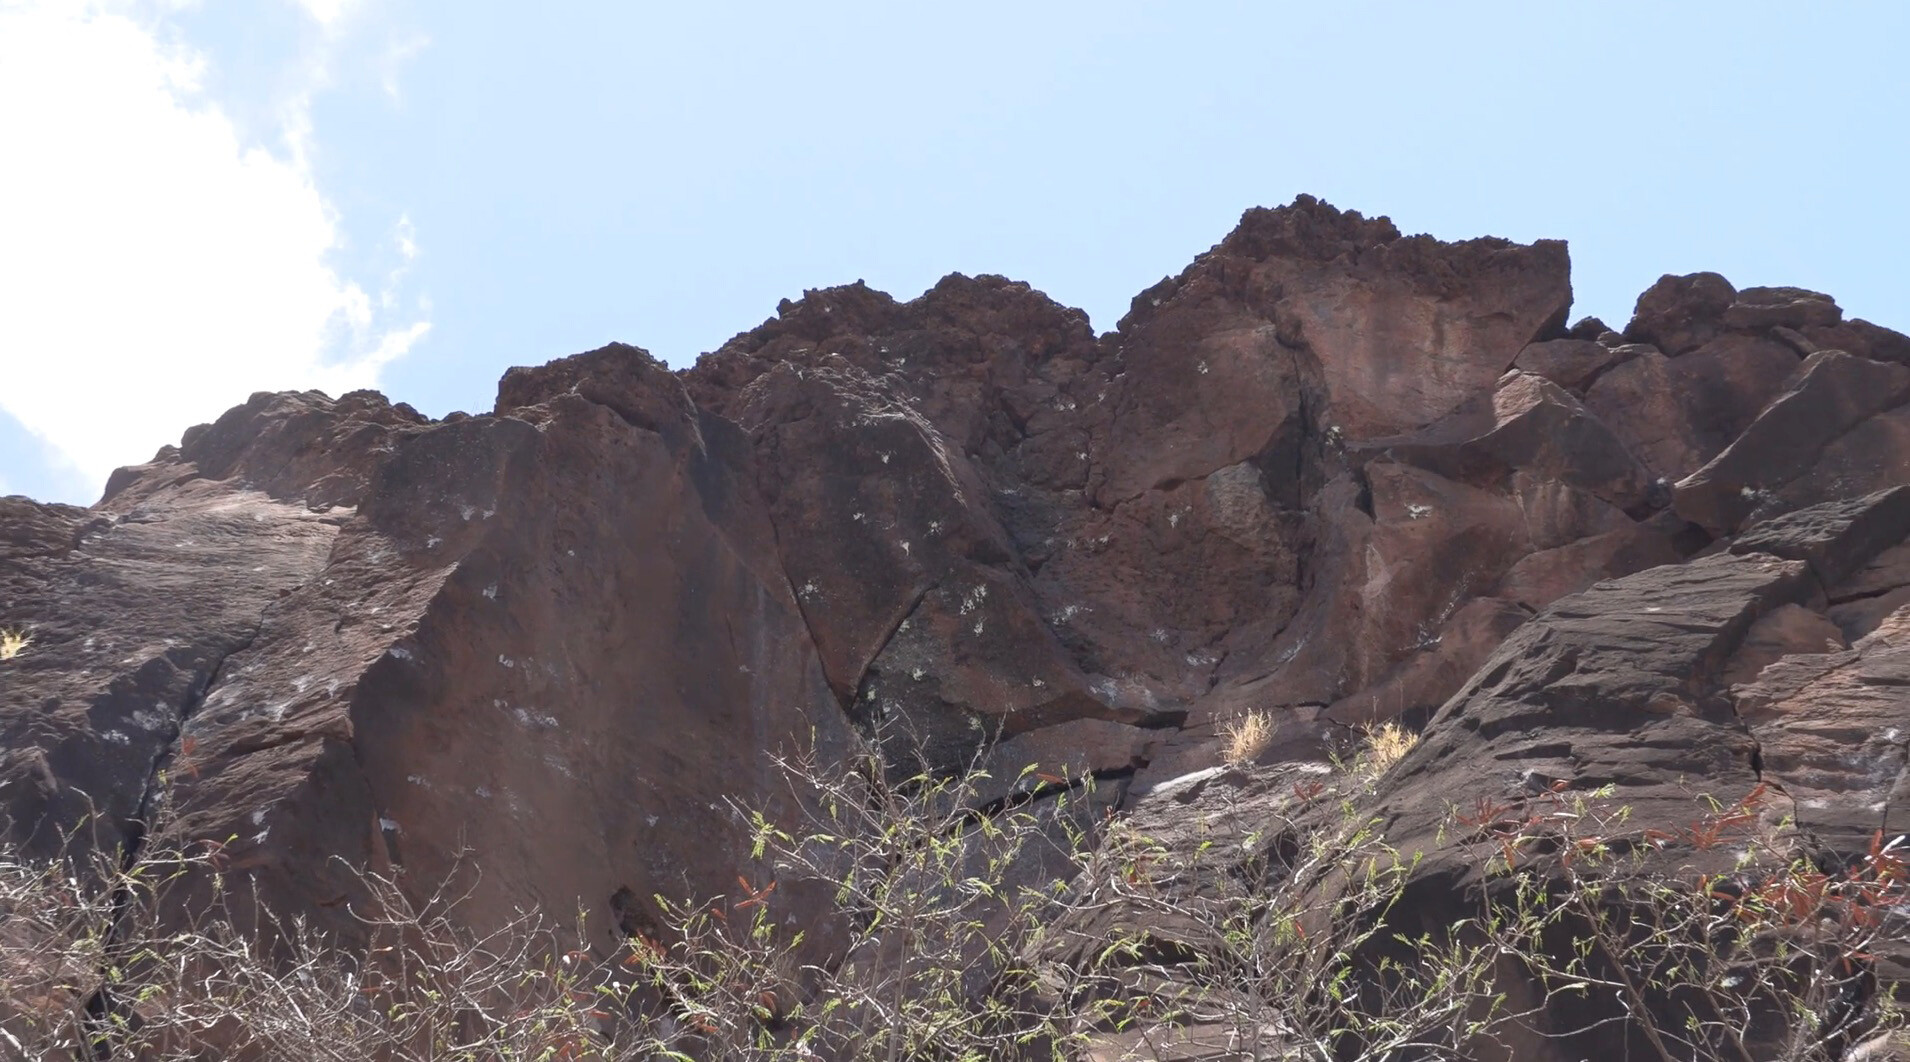 Hawaiian authorities ask for help after historic cliff carvings were vandalized with paintballs